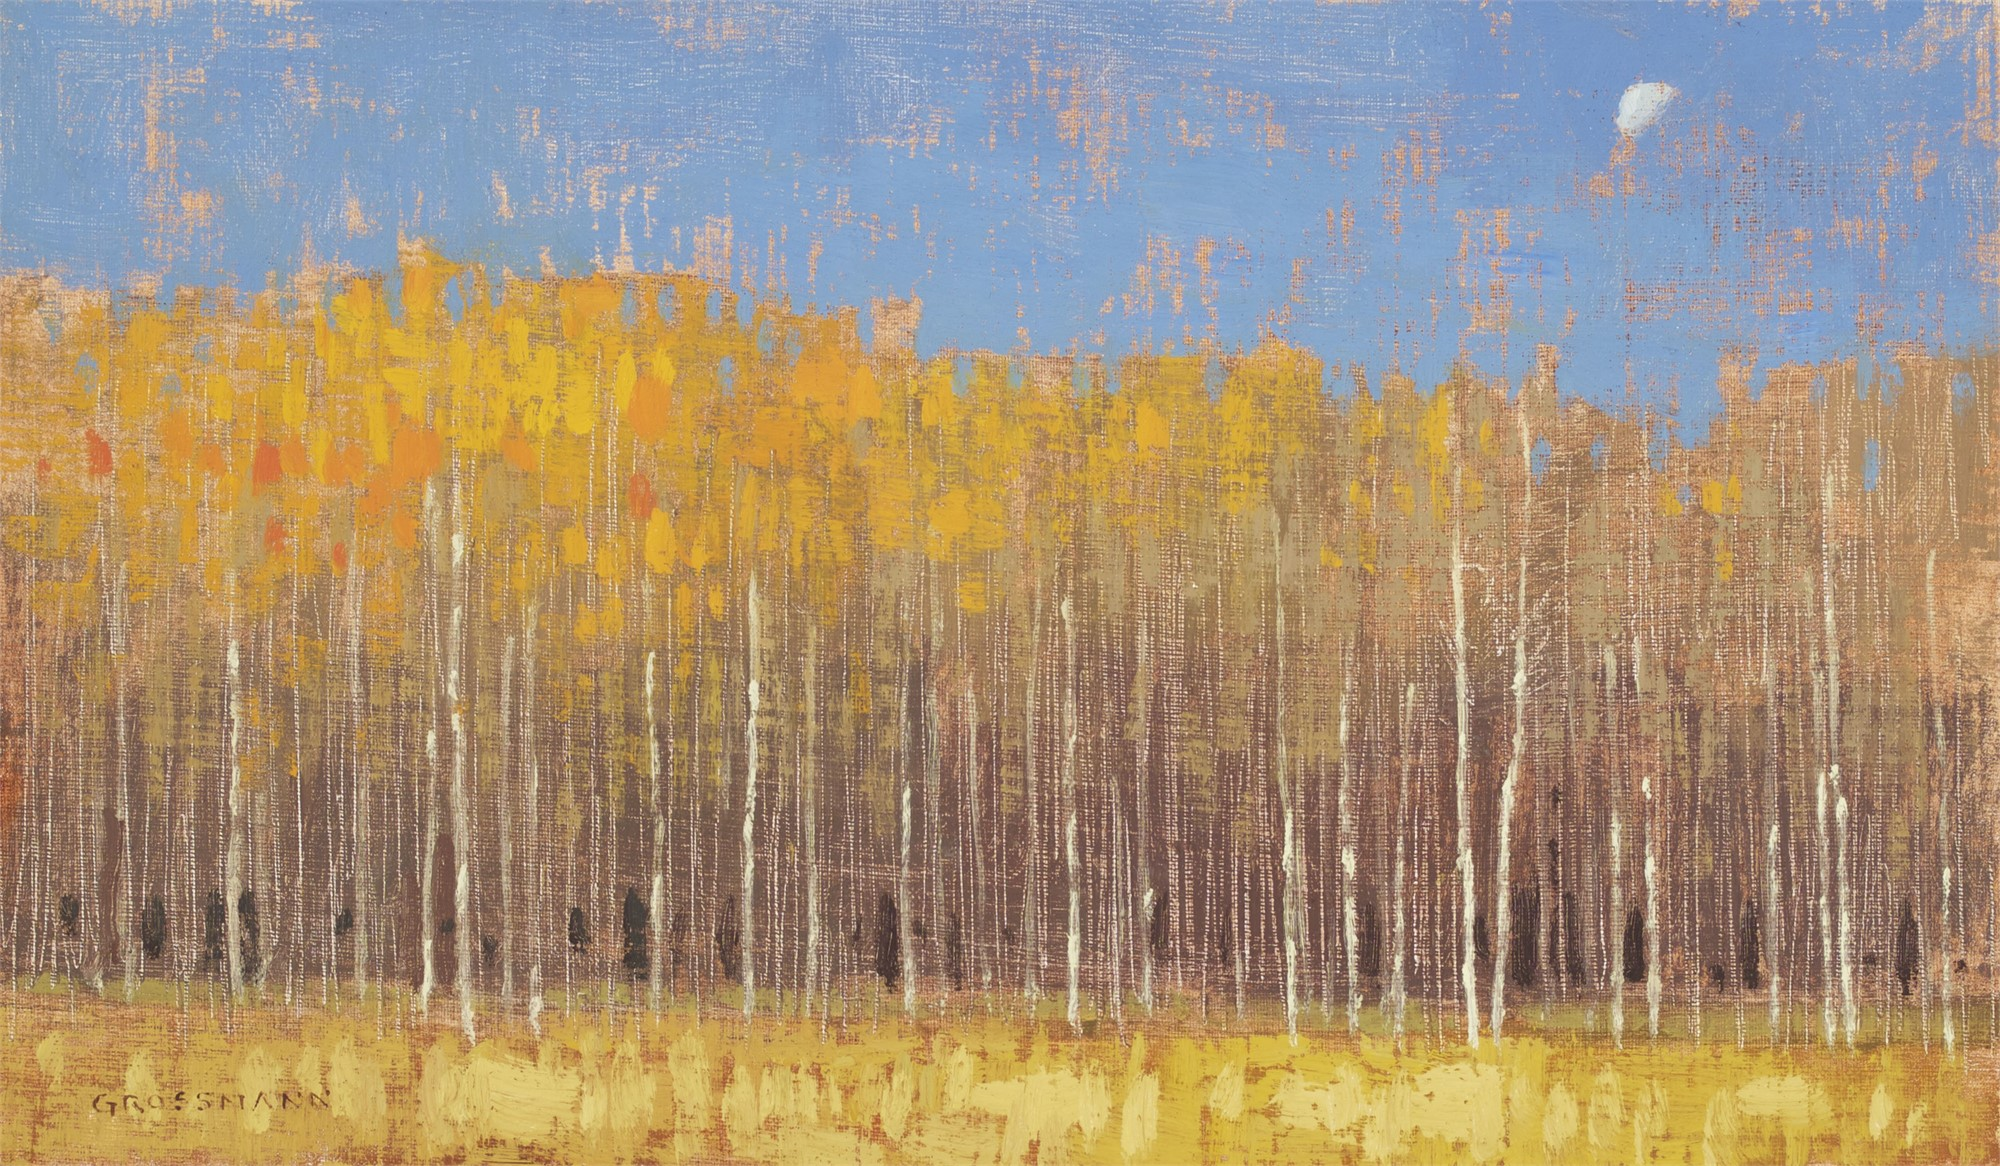 Moon and Lingering Leaves by David Grossmann